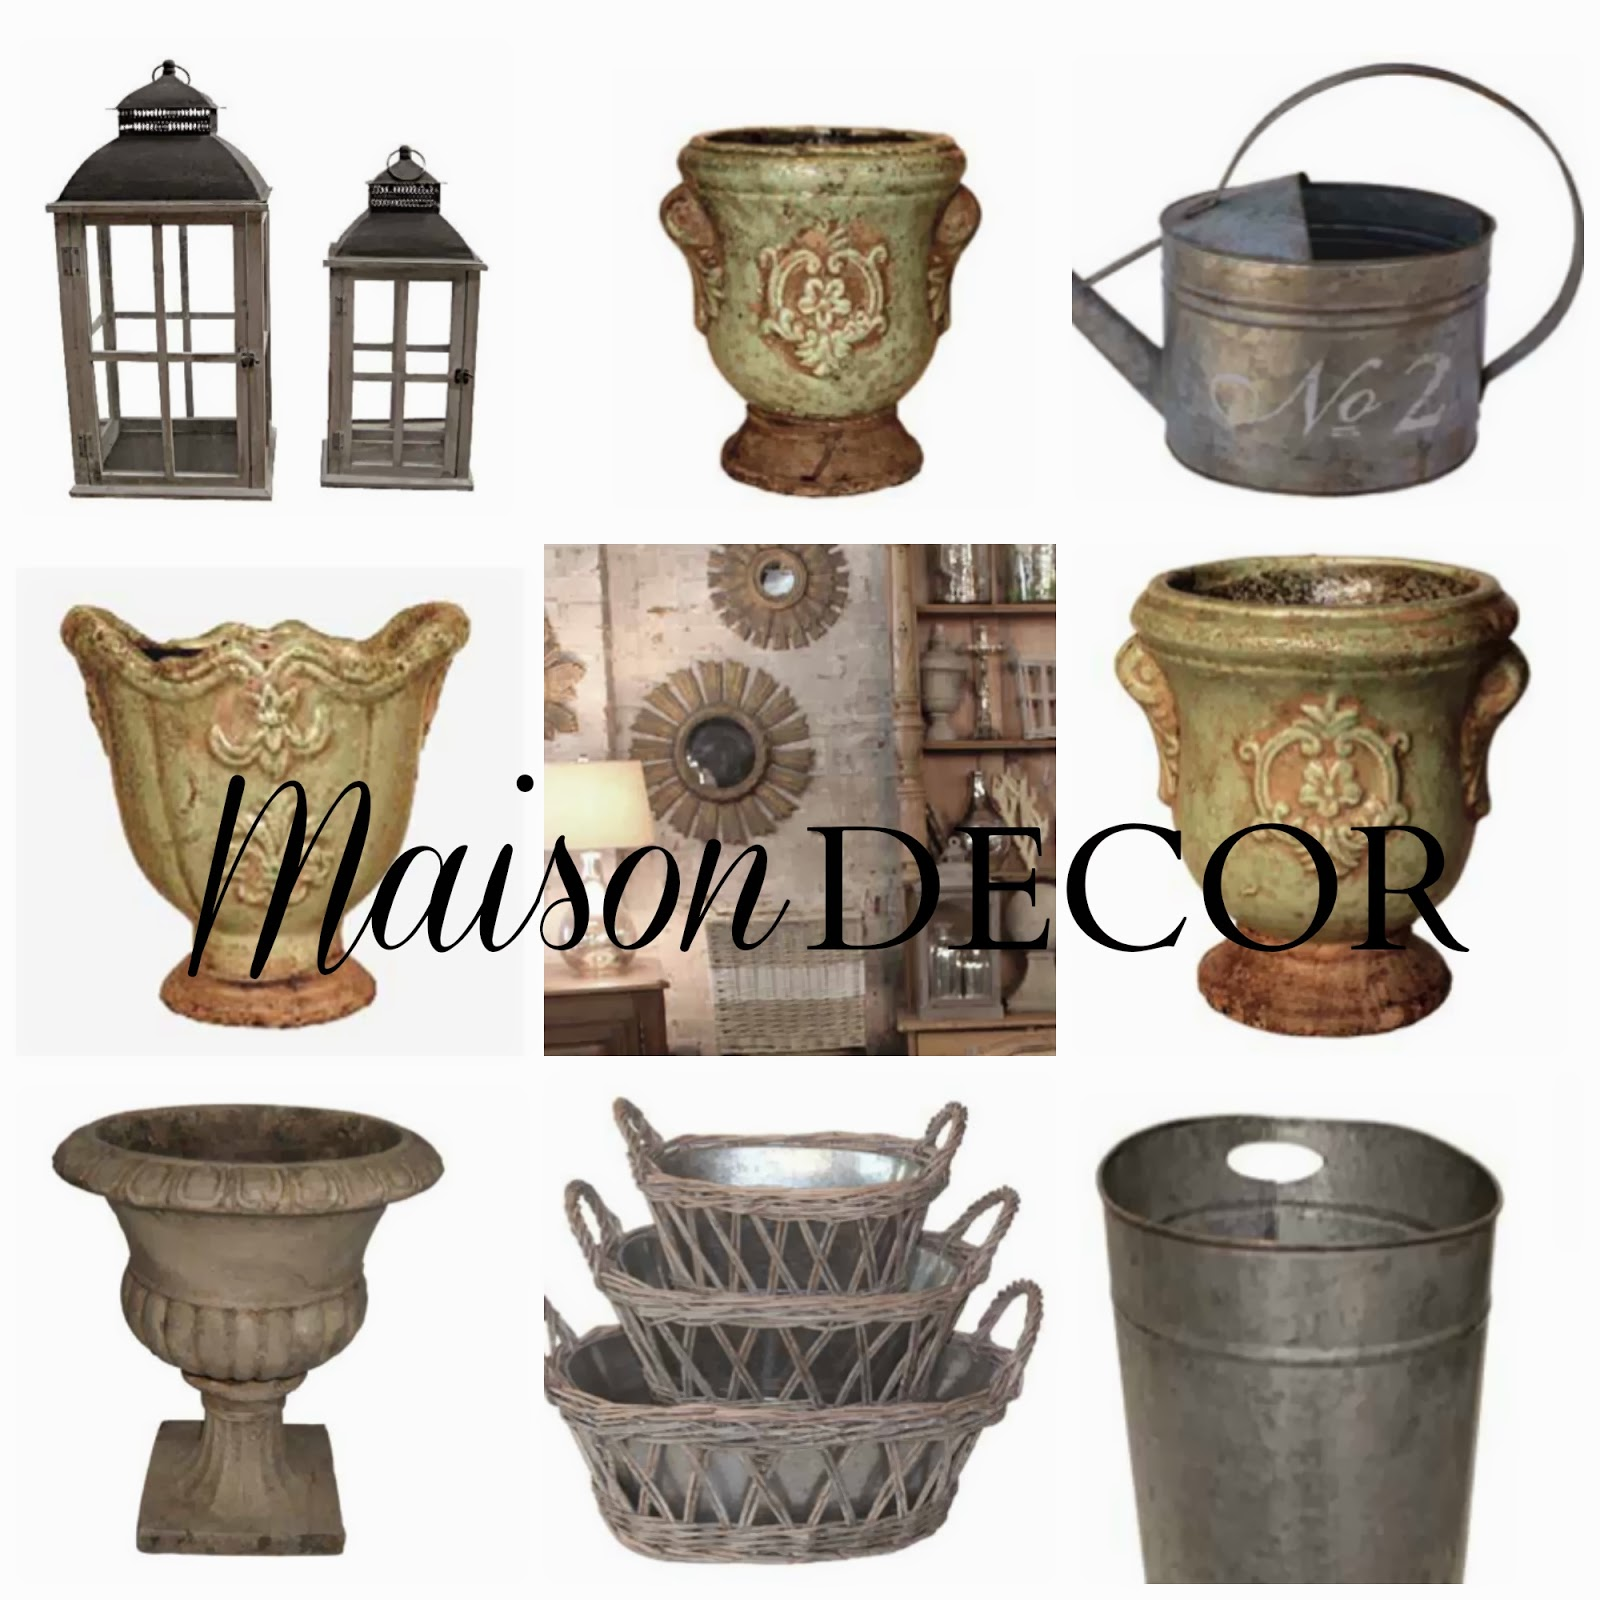 Maison Decor: Buying Trip In Atlanta Means New Home Decor